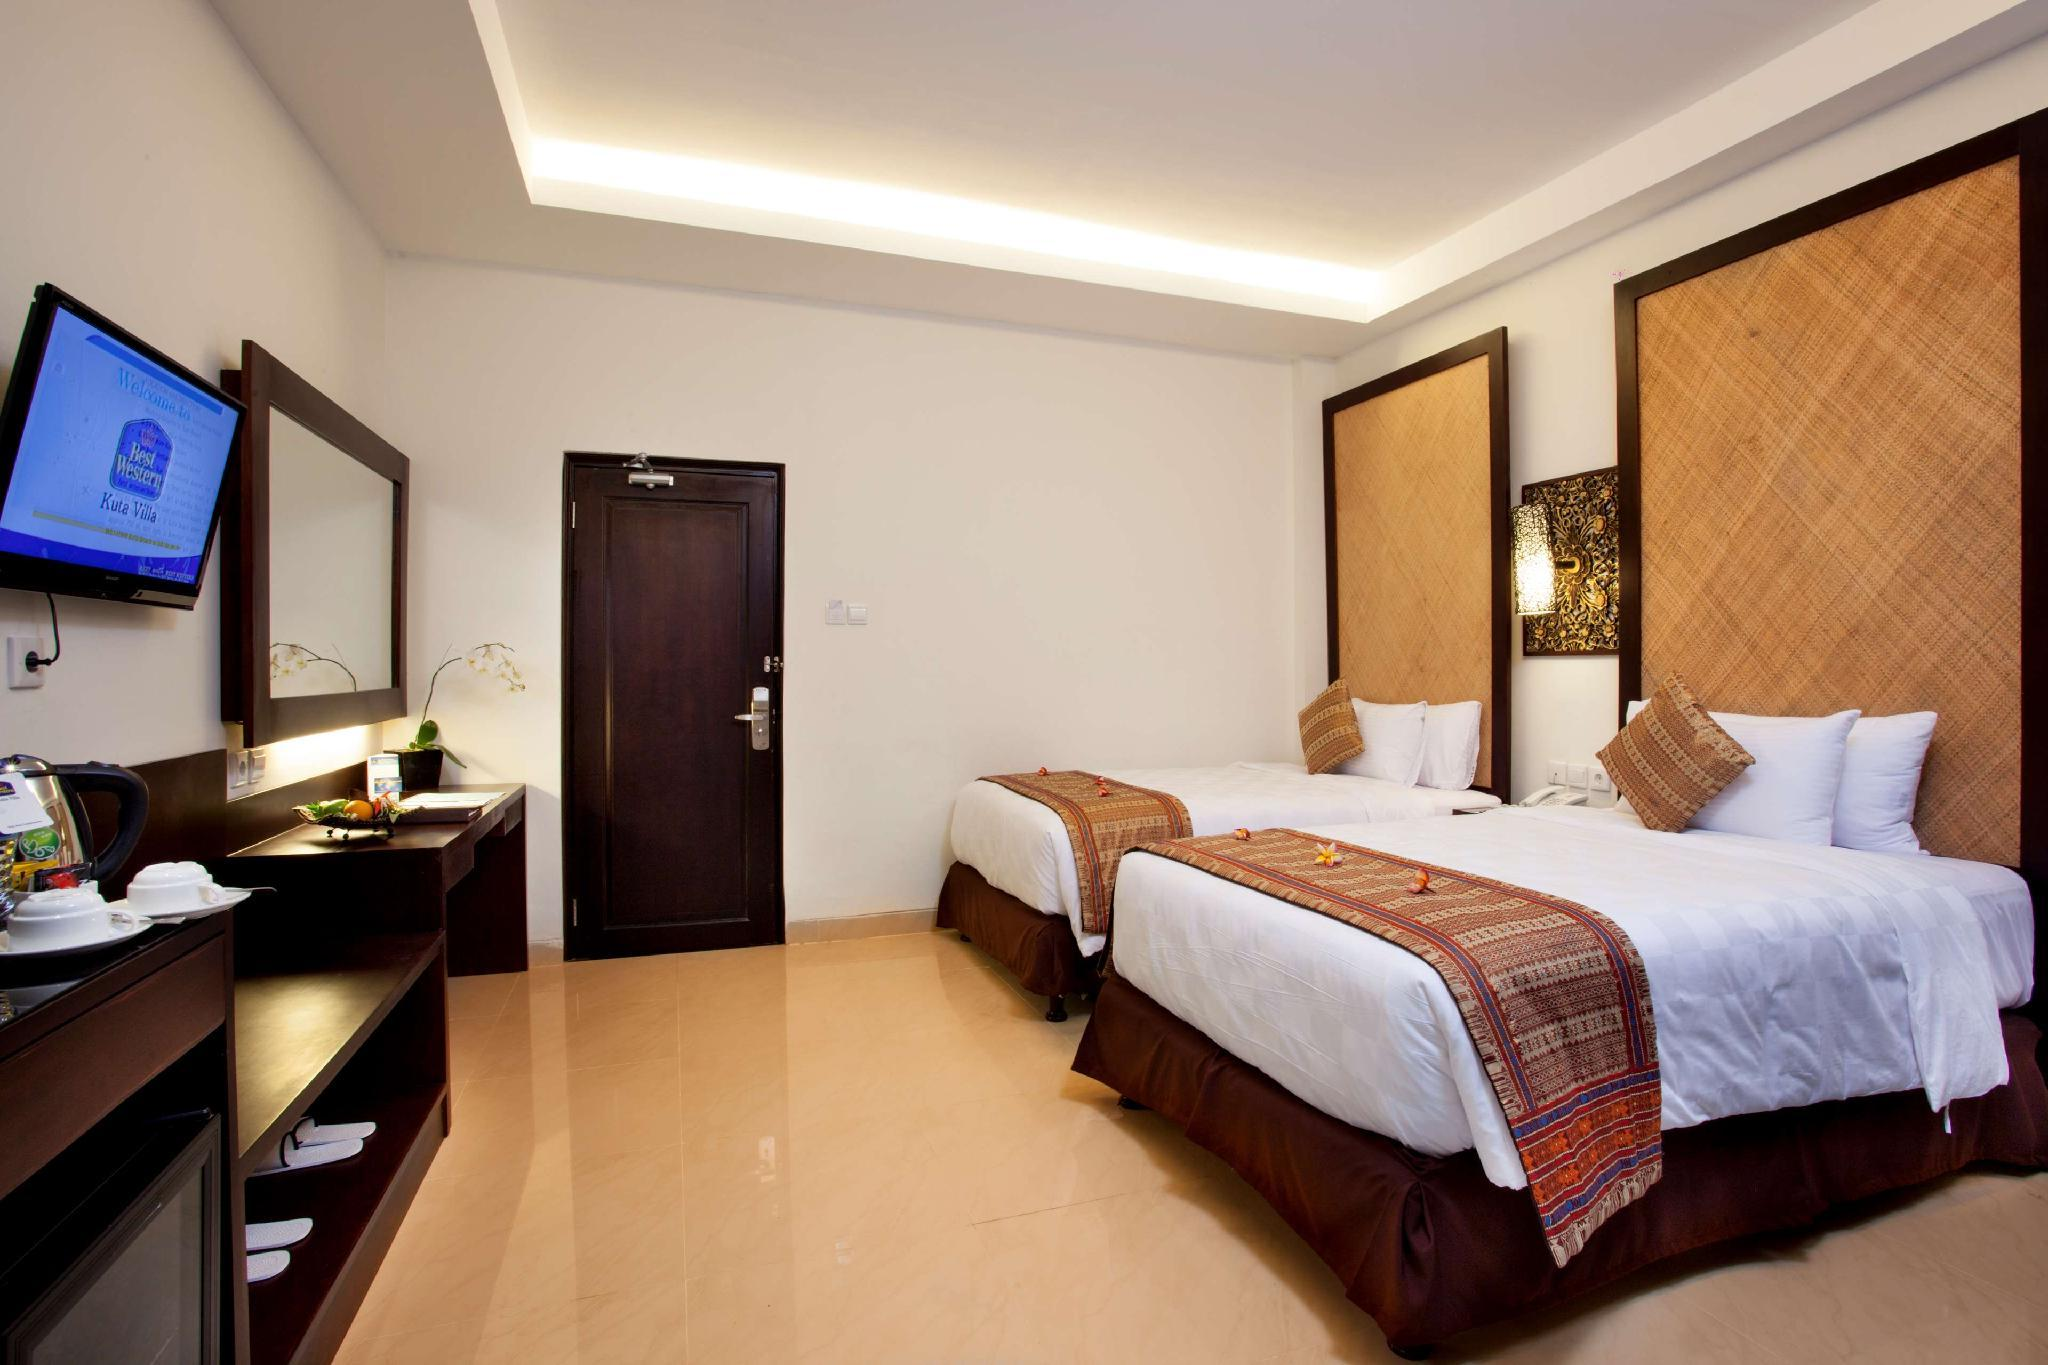 Kamar Deluxe dengan 2 Kasur Single – Bebas Asap Rokok (2 Single Beds Deluxe Room Non-Smoking)